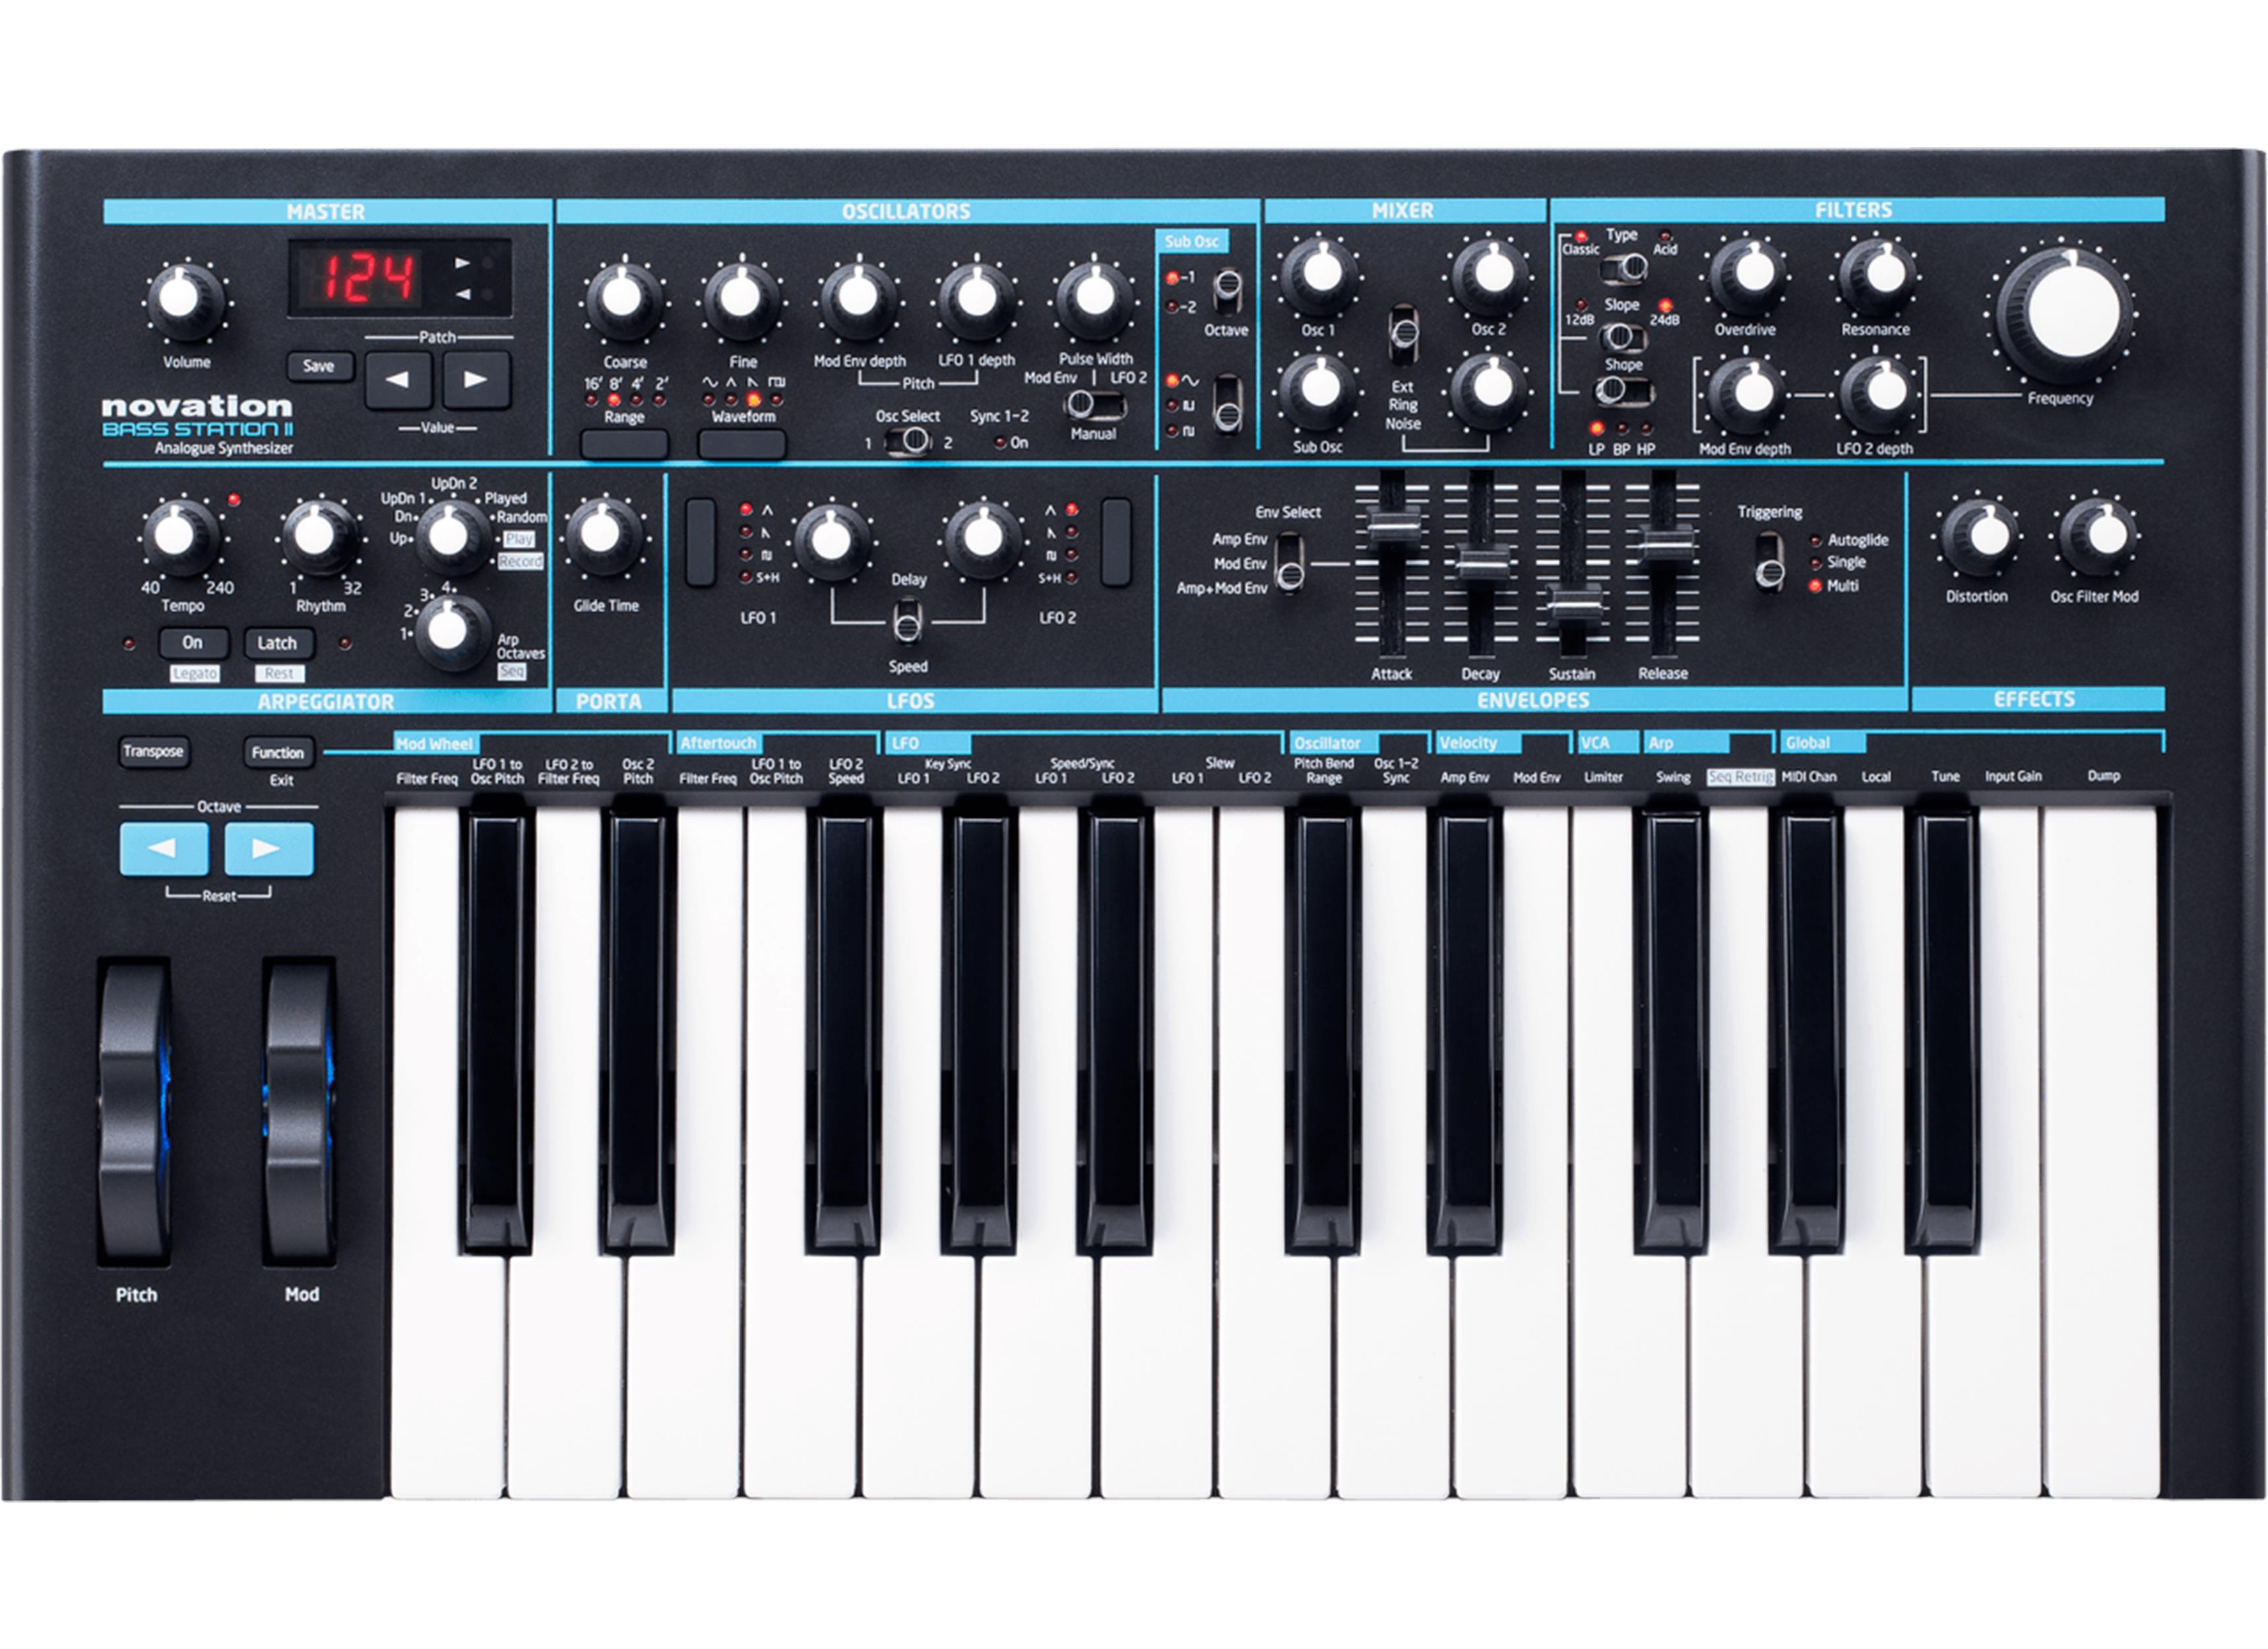 NOVATION-BASS-STATION-II-sku-21723